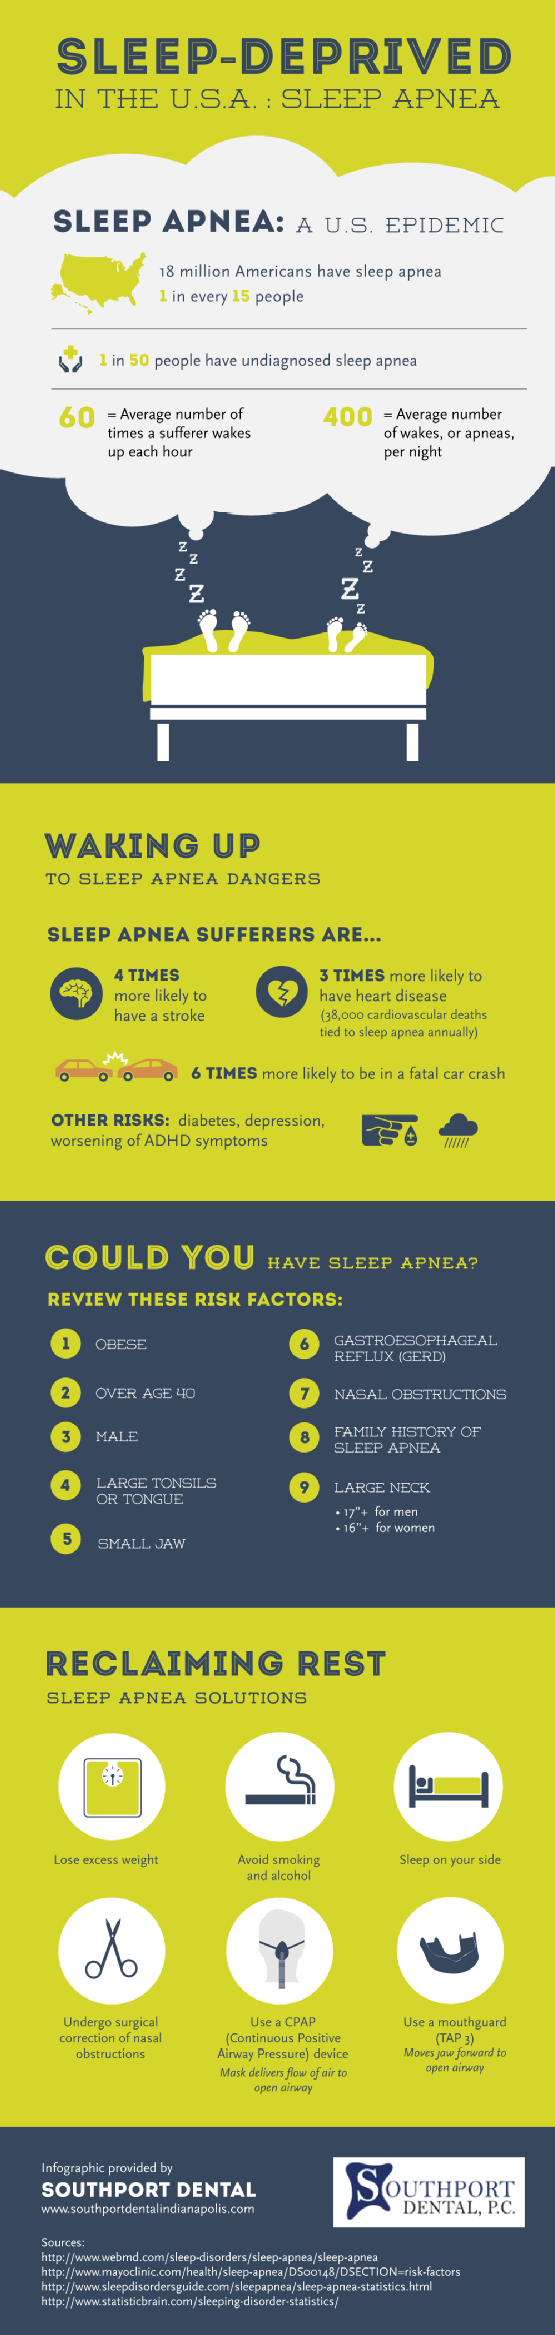 Did you know that 1 in 50 people have undiagnosed sleep apnea? Find more facts about this sleep diso